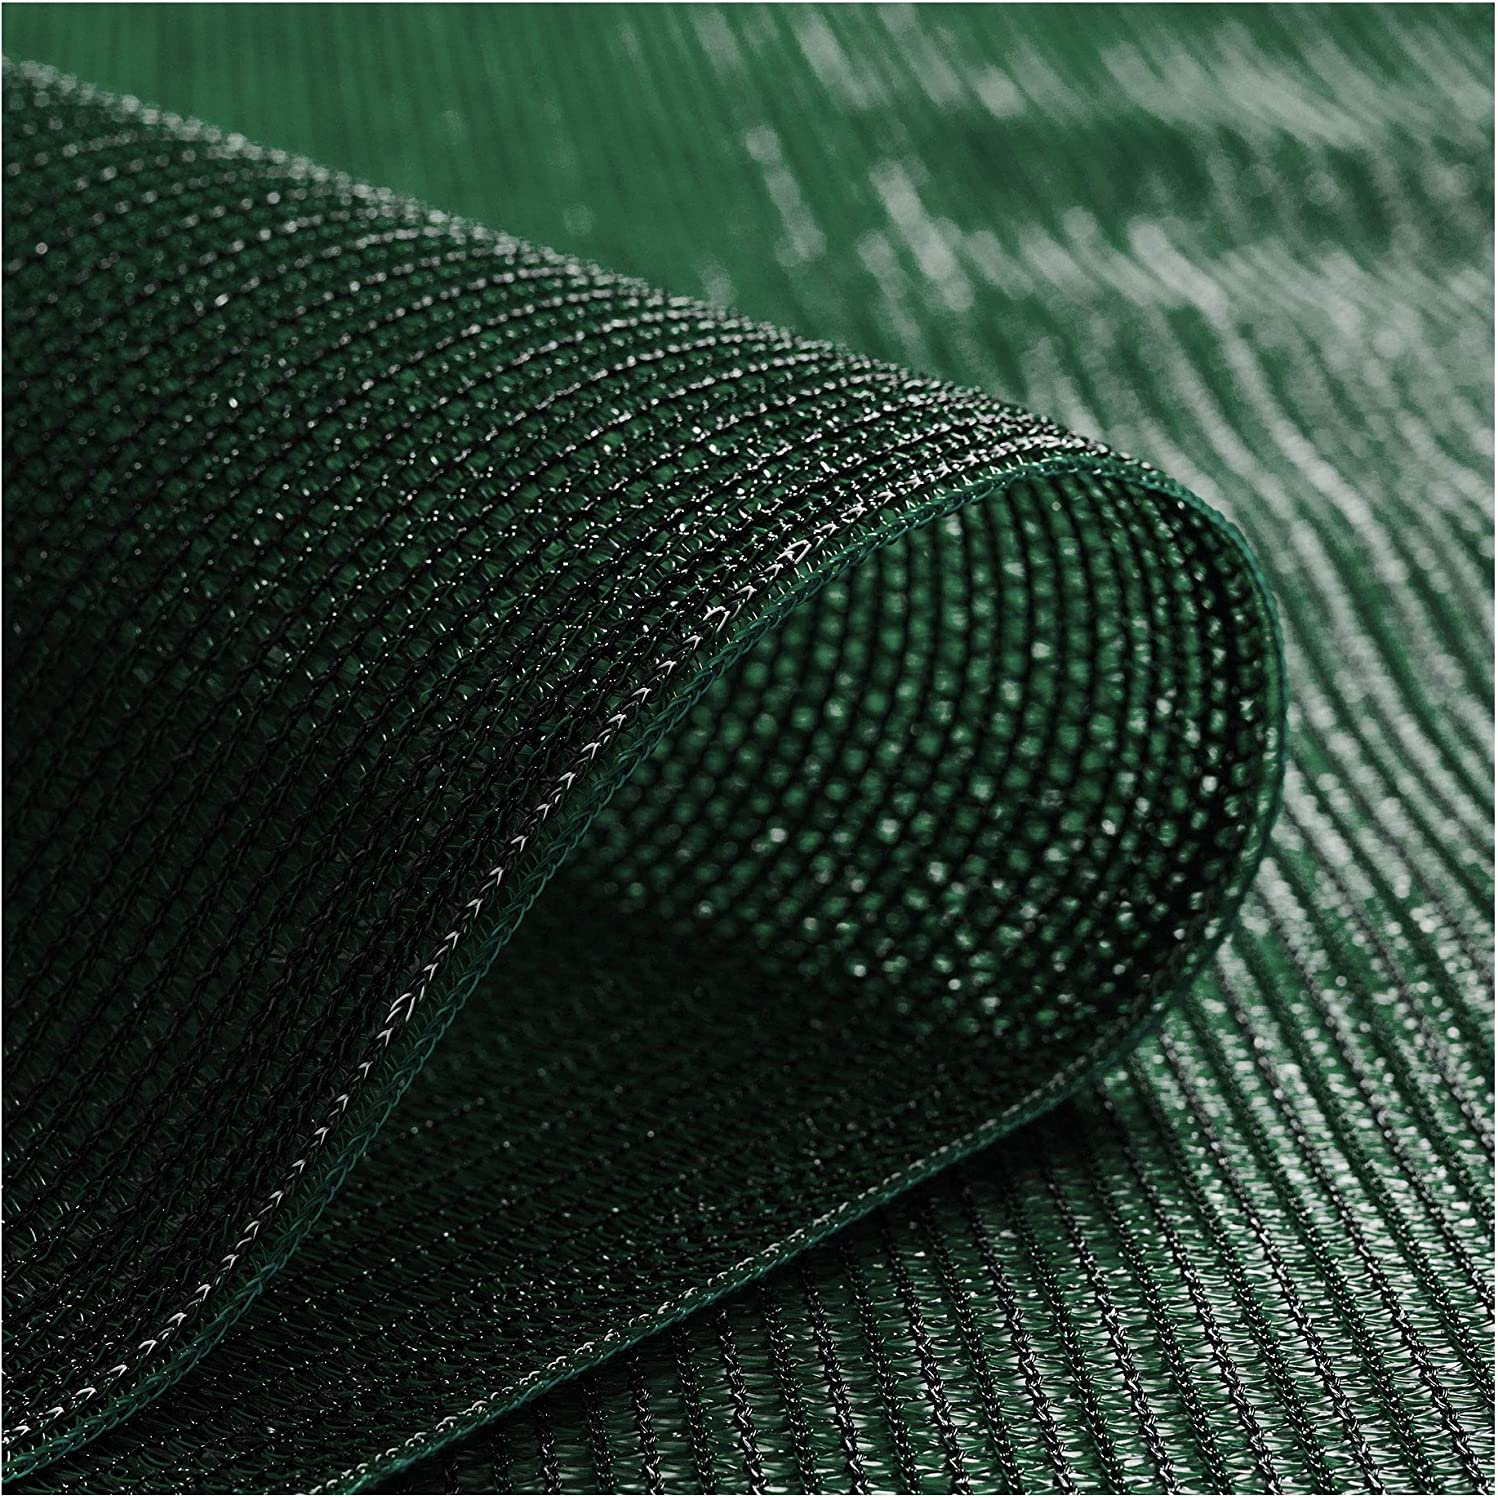 Gale Pacific, USA 302238 6X15 90% Uv Shade, 6' x 15', Heritage Green